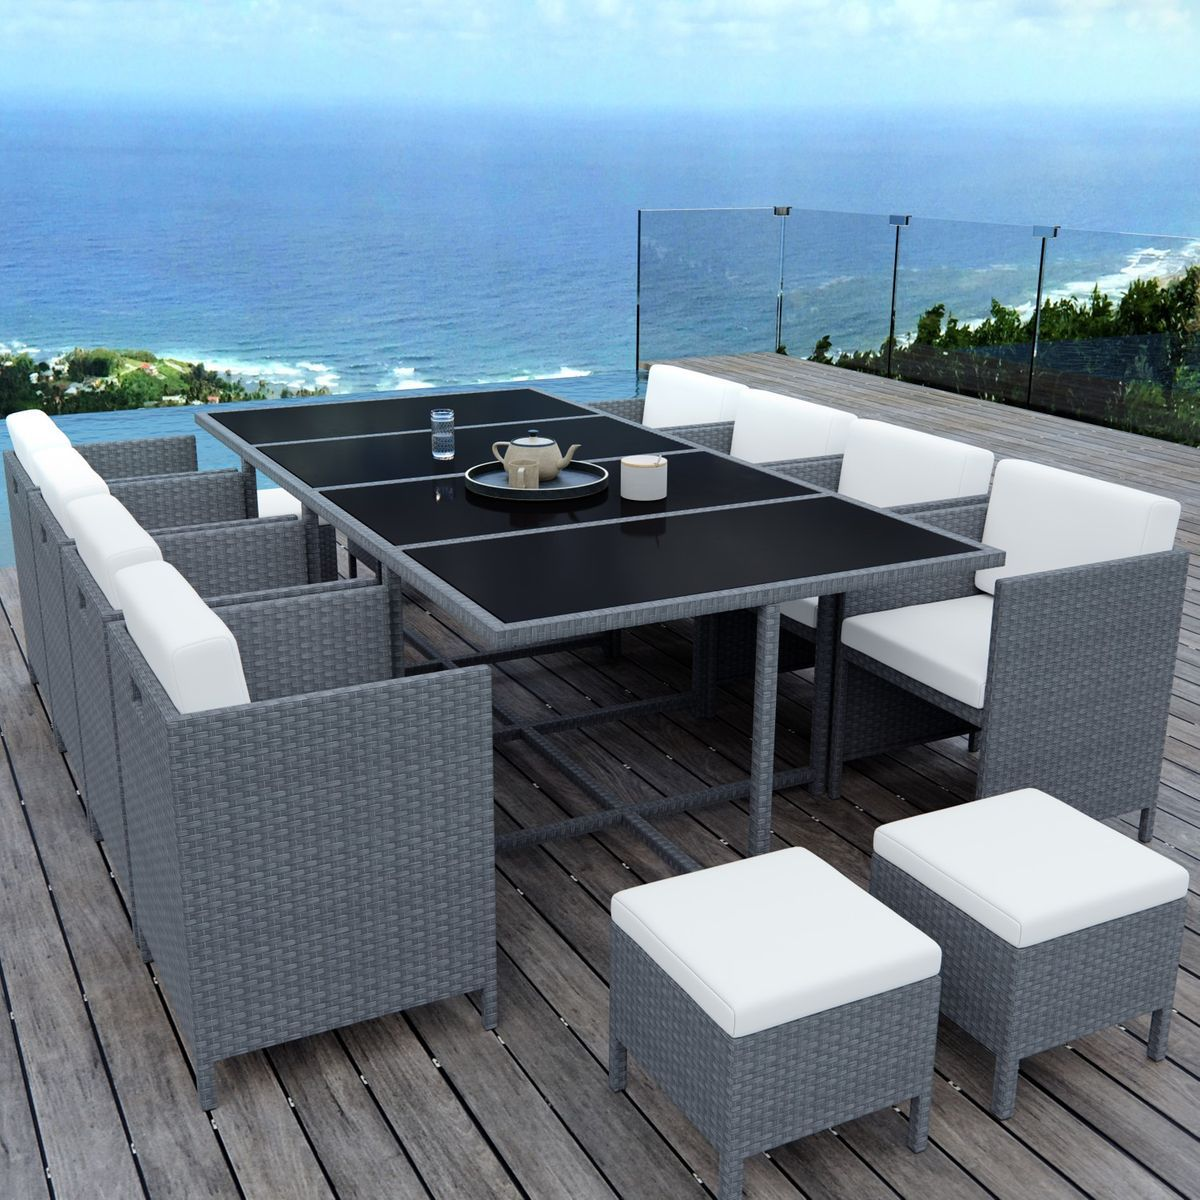 Table De Jardin Encastrable 12 Places Resine Tressee Munga 12